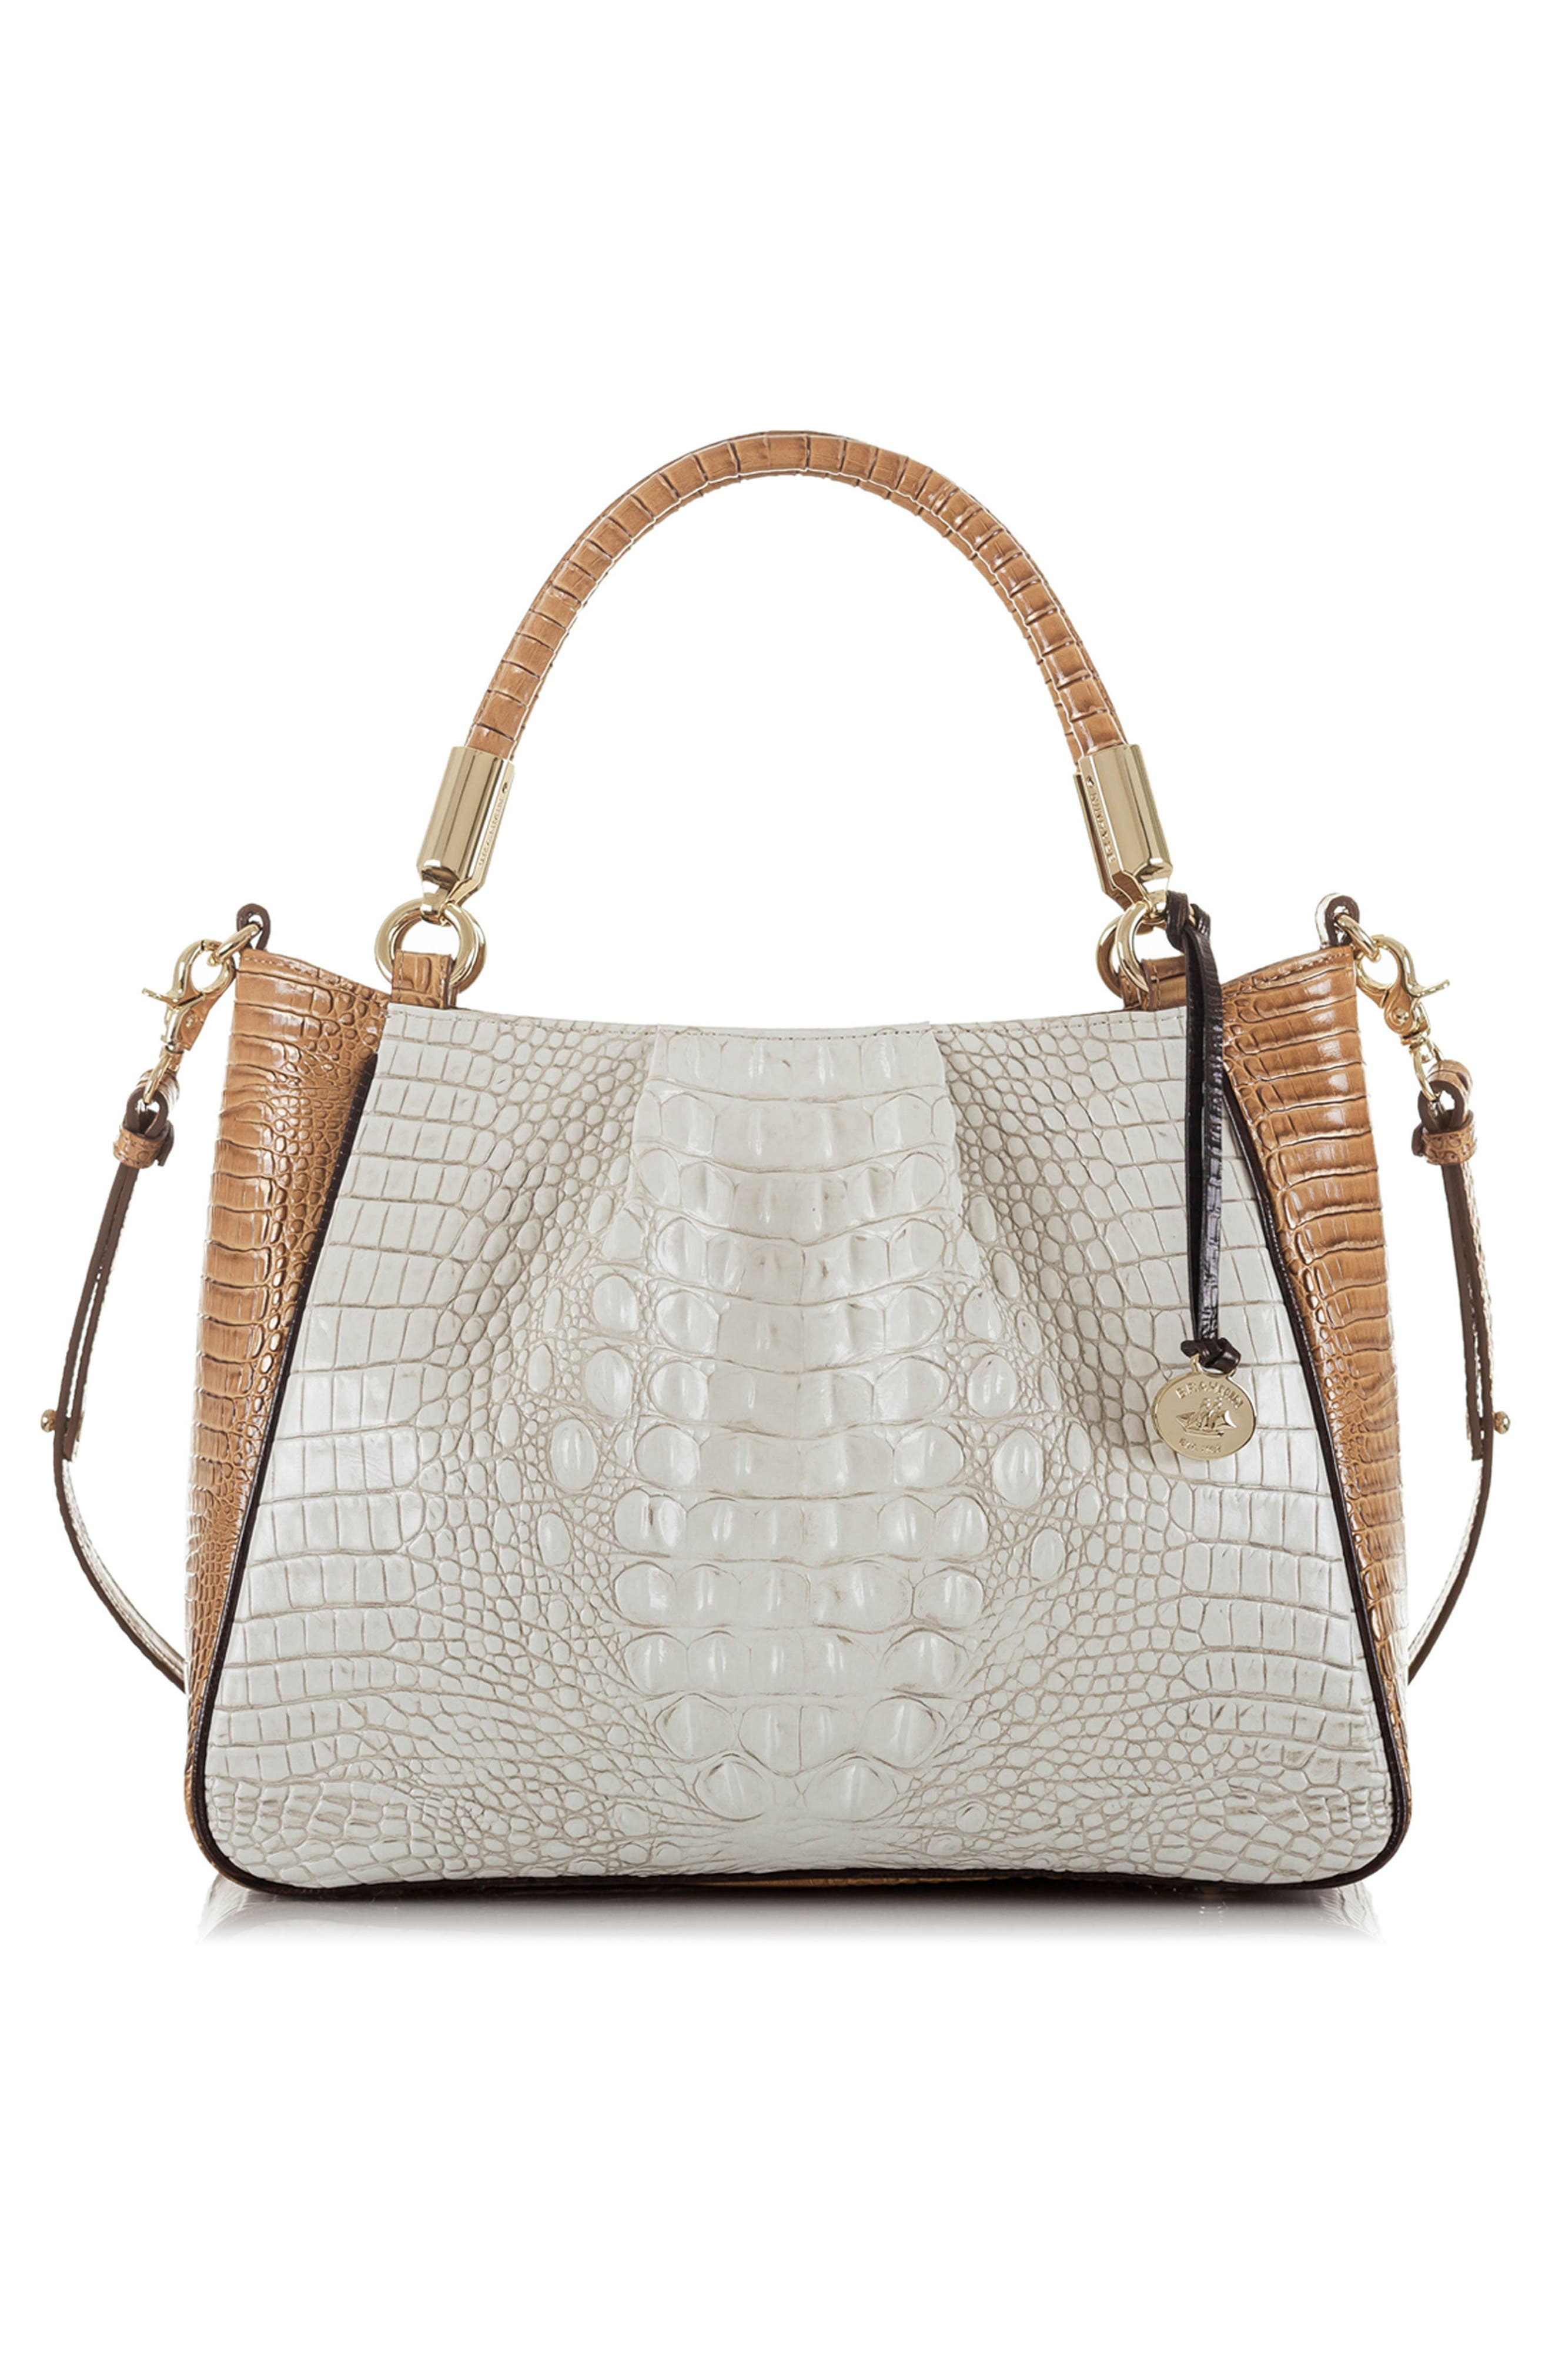 Ruby Croc Embossed Leather Satchel,                             Alternate thumbnail 2, color,                             100